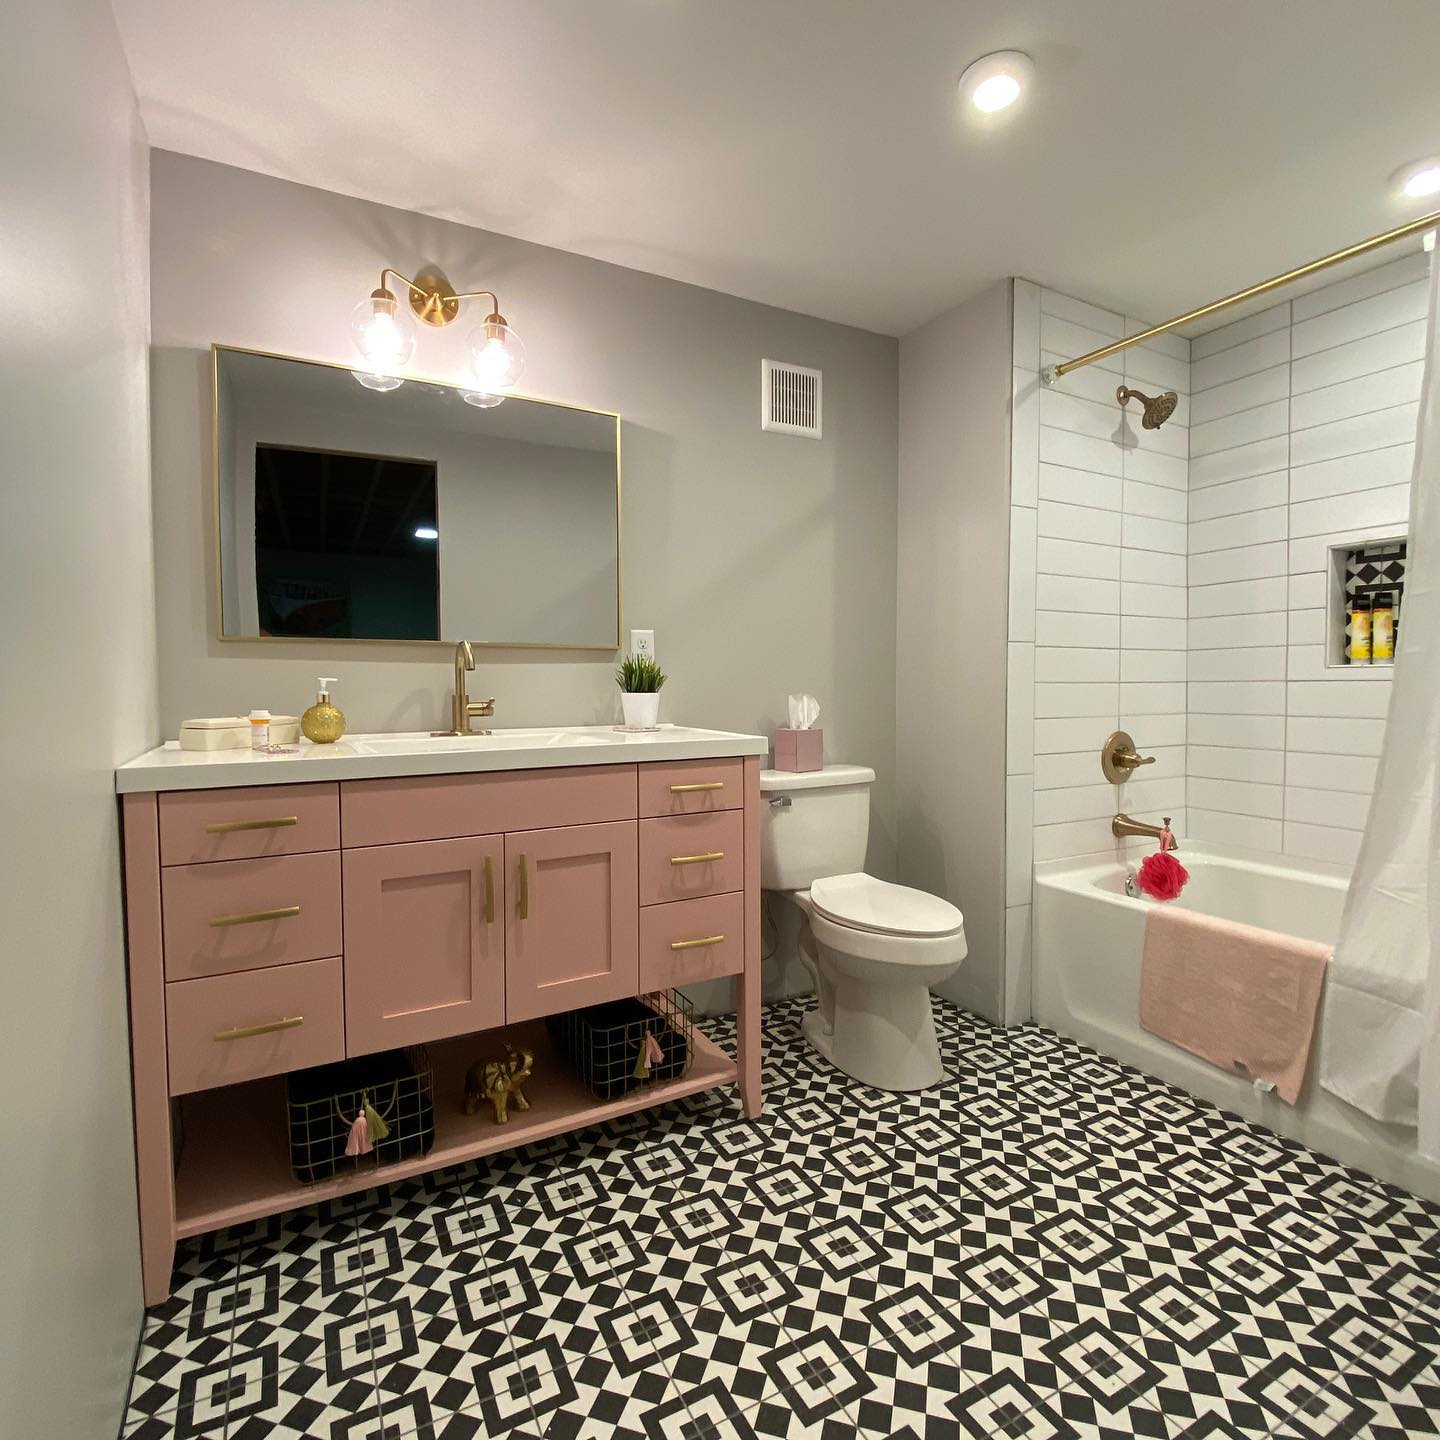 Blush pink bathroom vanity with gold accents, gold finishes, and bold pattern tile